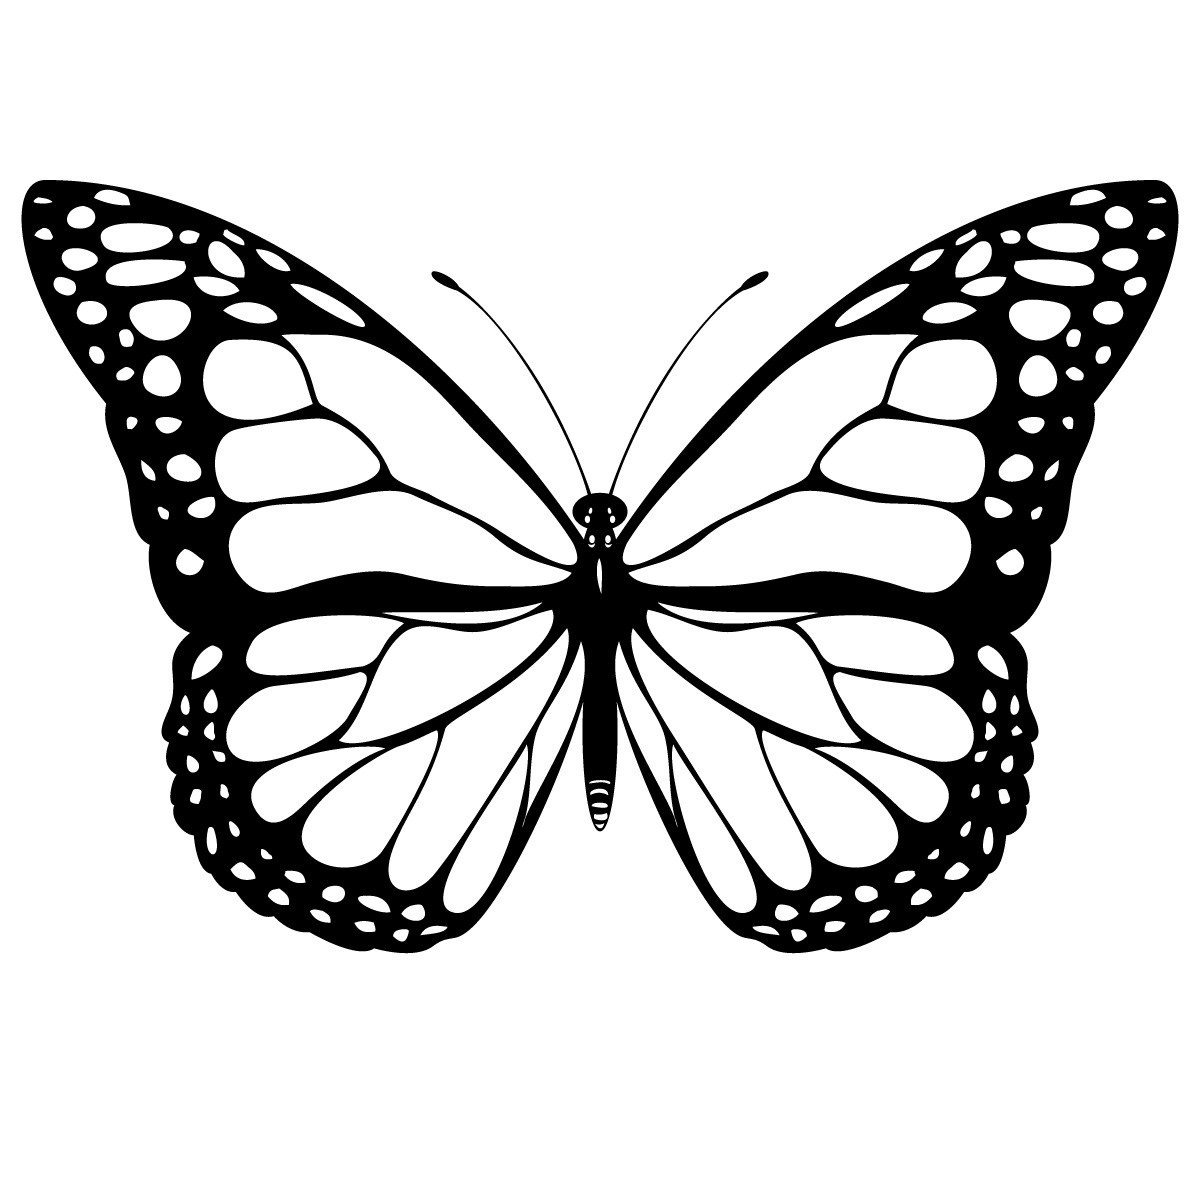 butterfly printable coloring pages - Printable Butterfly Coloring Pages